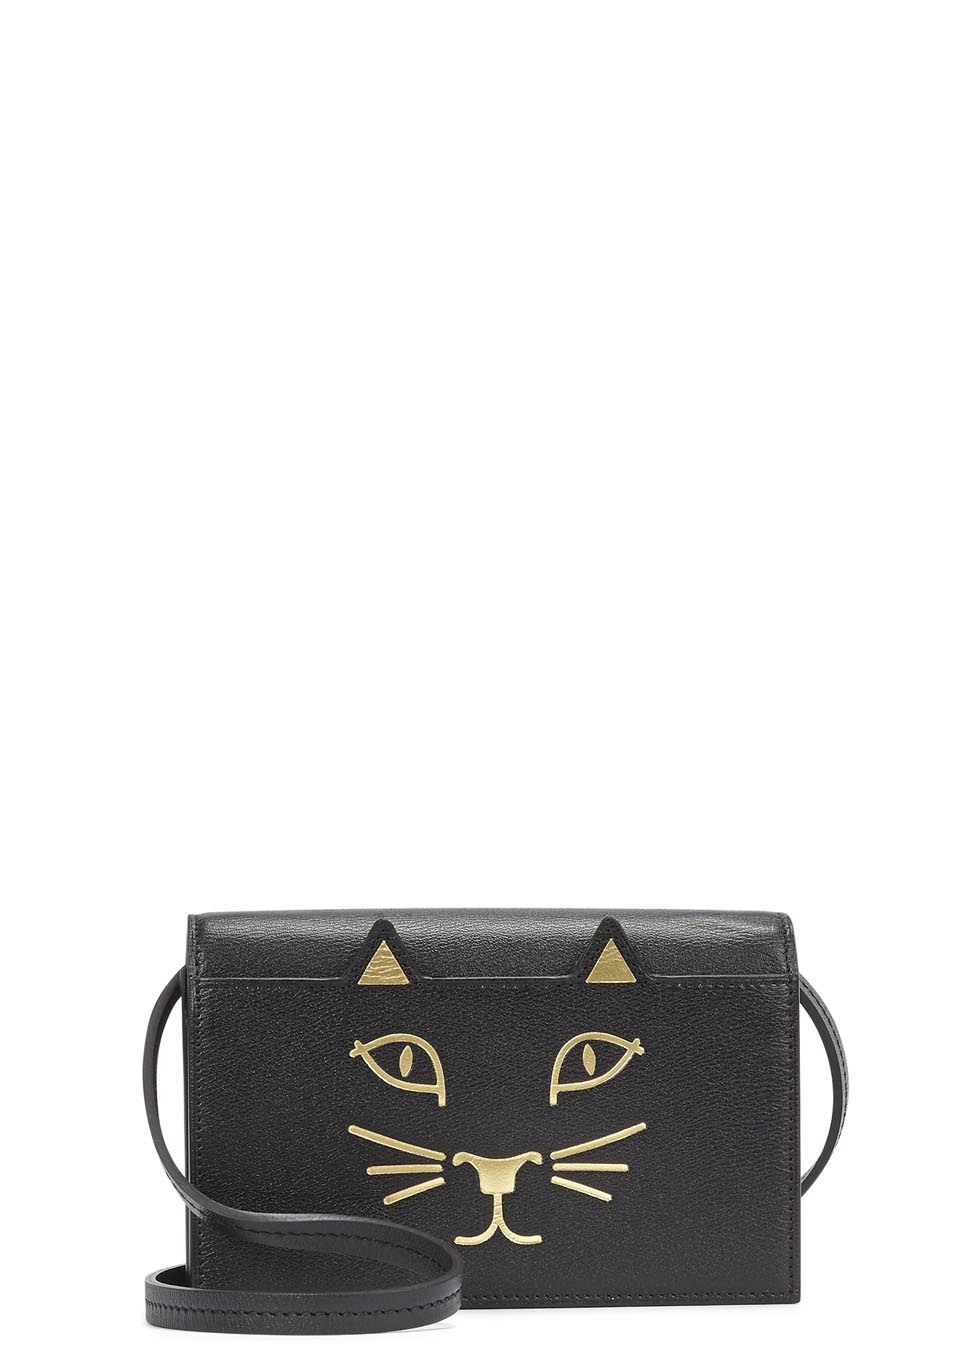 Mini Black Leather Cat Face Shoulder Bag - secondary colour: gold; predominant colour: black; occasions: casual, creative work; type of pattern: standard; style: messenger; length: across body/long; size: mini; material: leather; finish: plain; pattern: patterned/print; season: s/s 2015; wardrobe: highlight